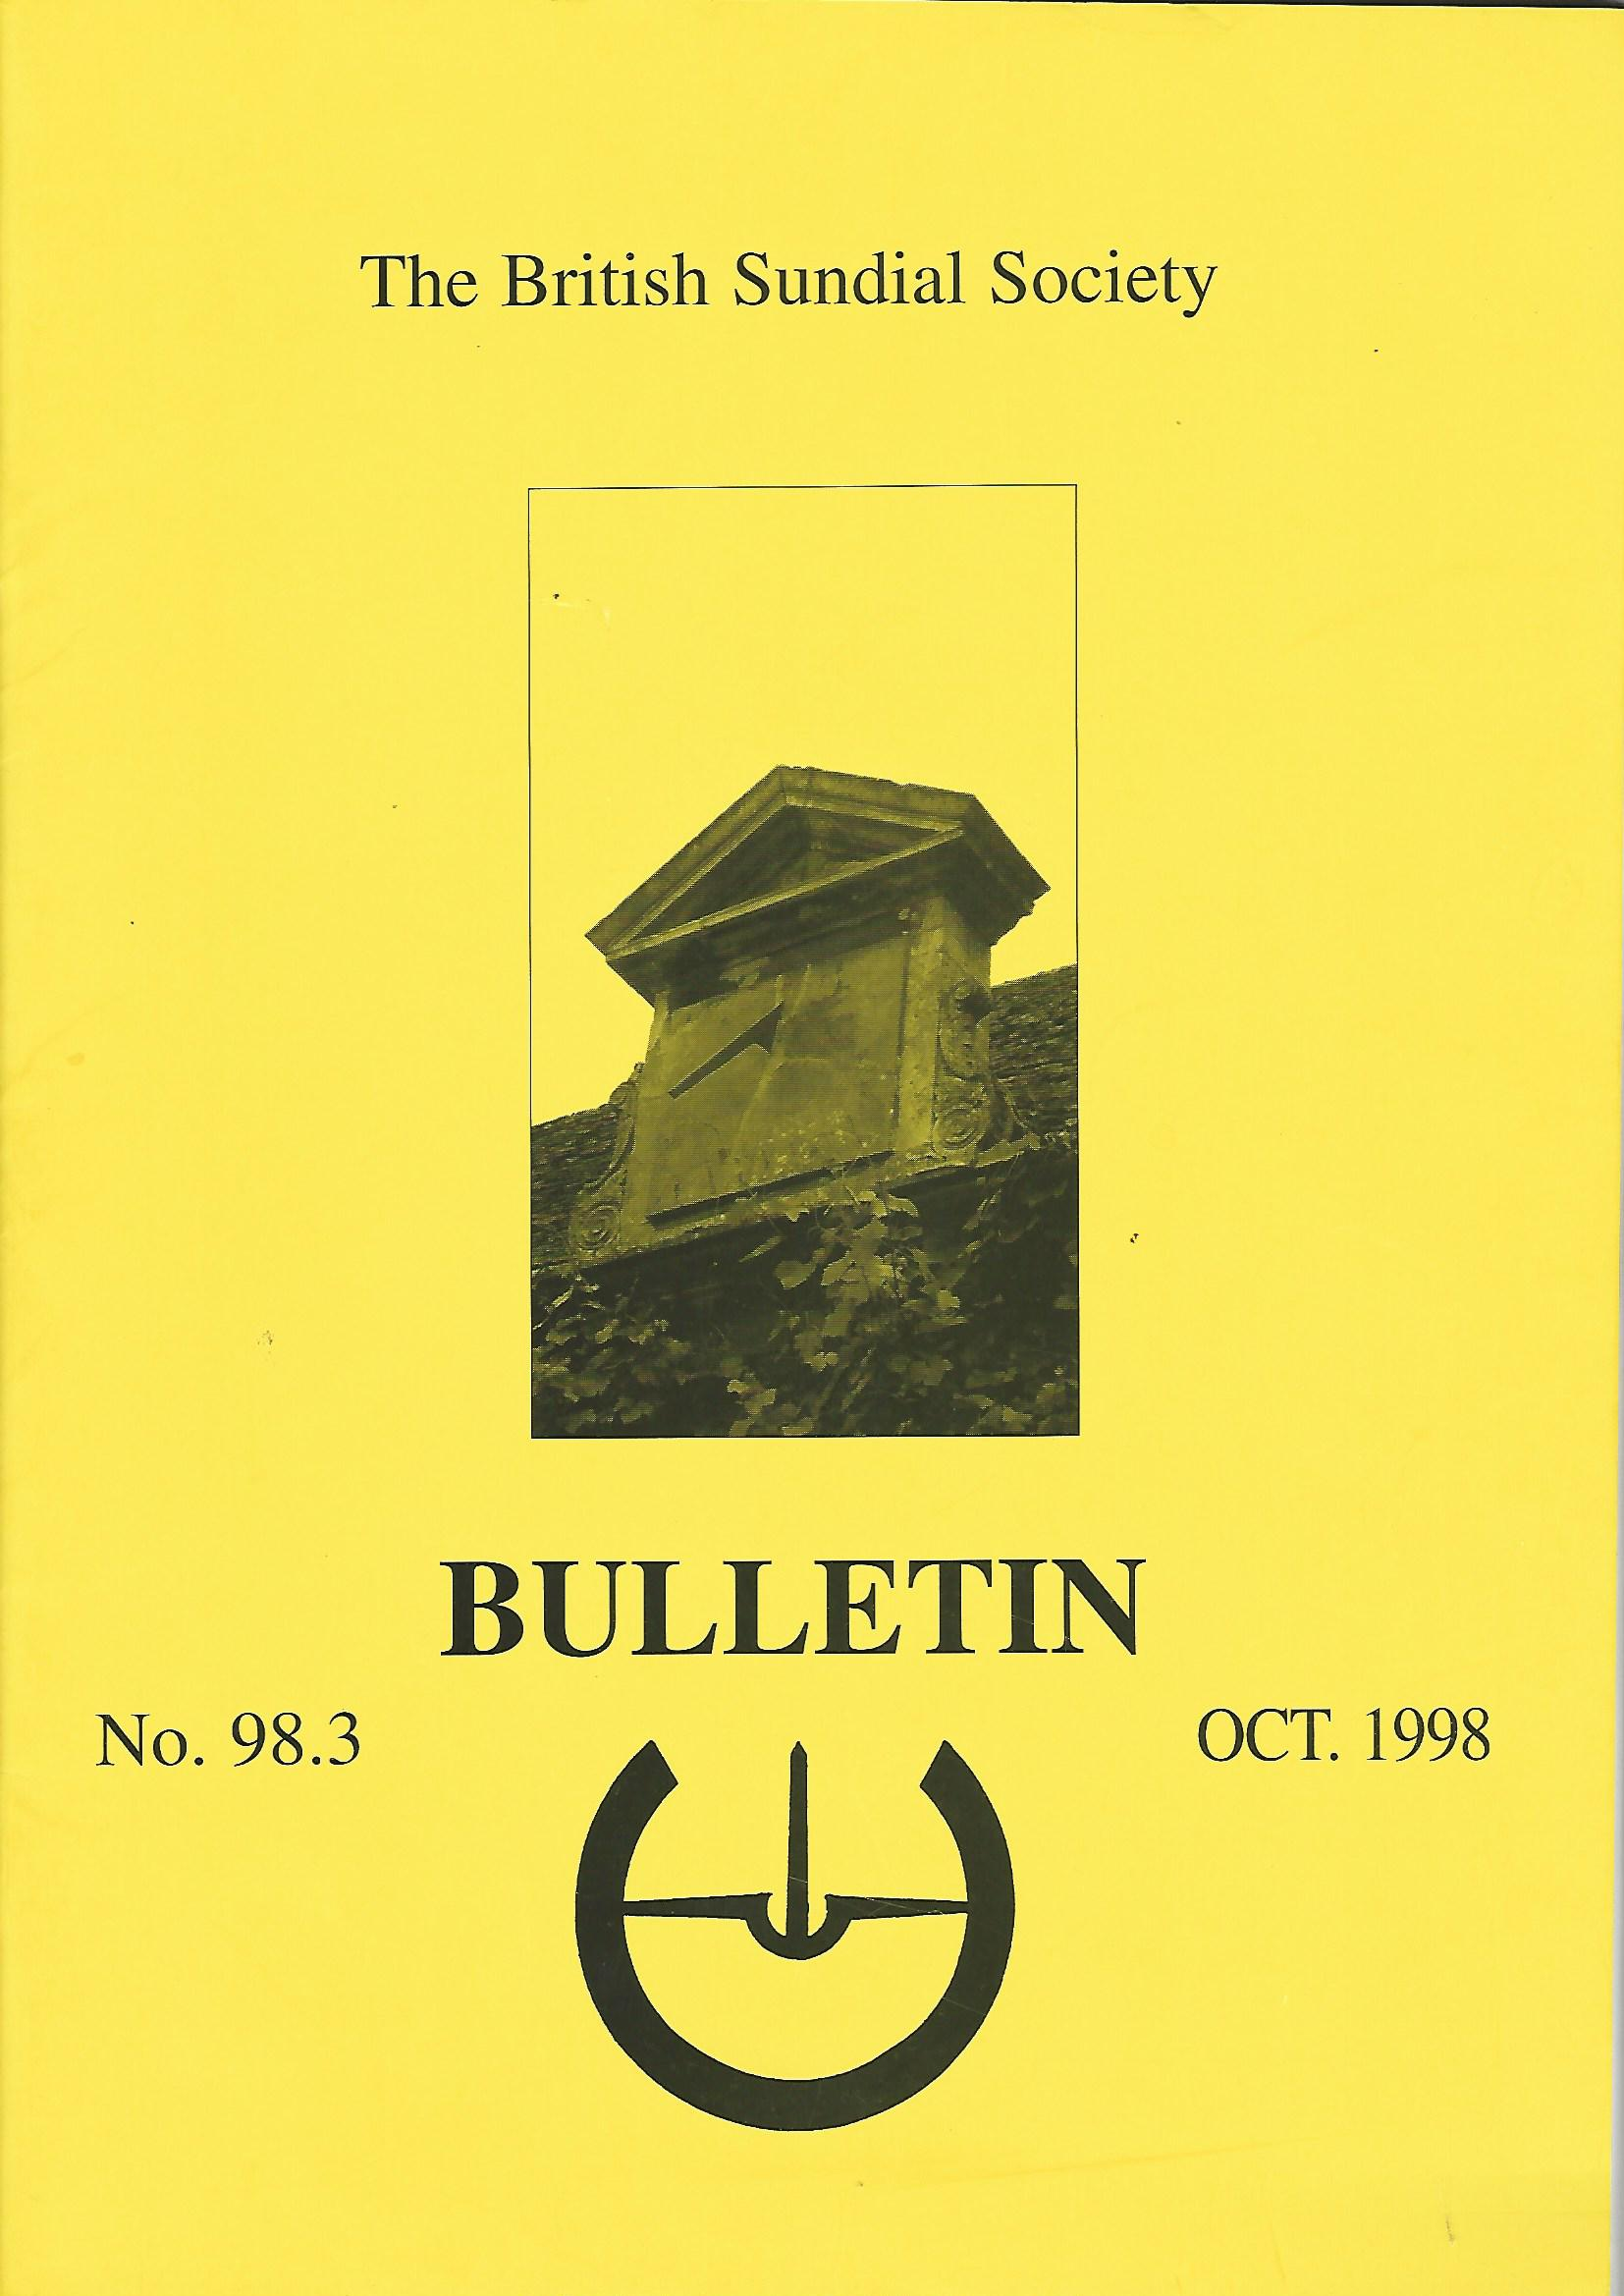 Image for The British Sundial Society Bulletin No.98.3.